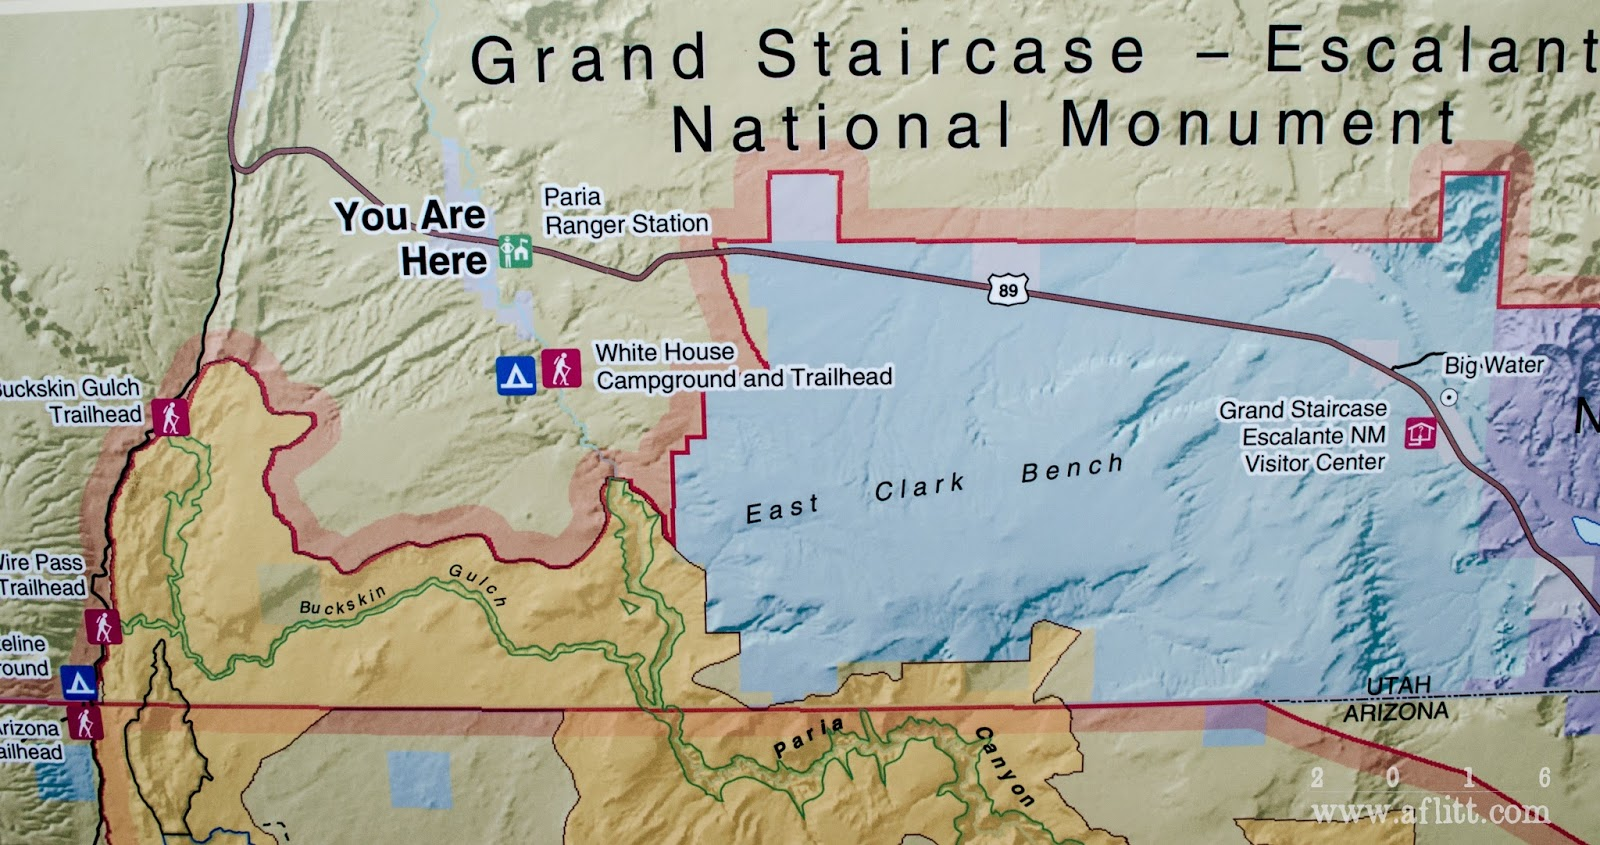 map at paria station detail paria contact station grand staircase escalante national monument utah march 24 2016 click on image to enlarge